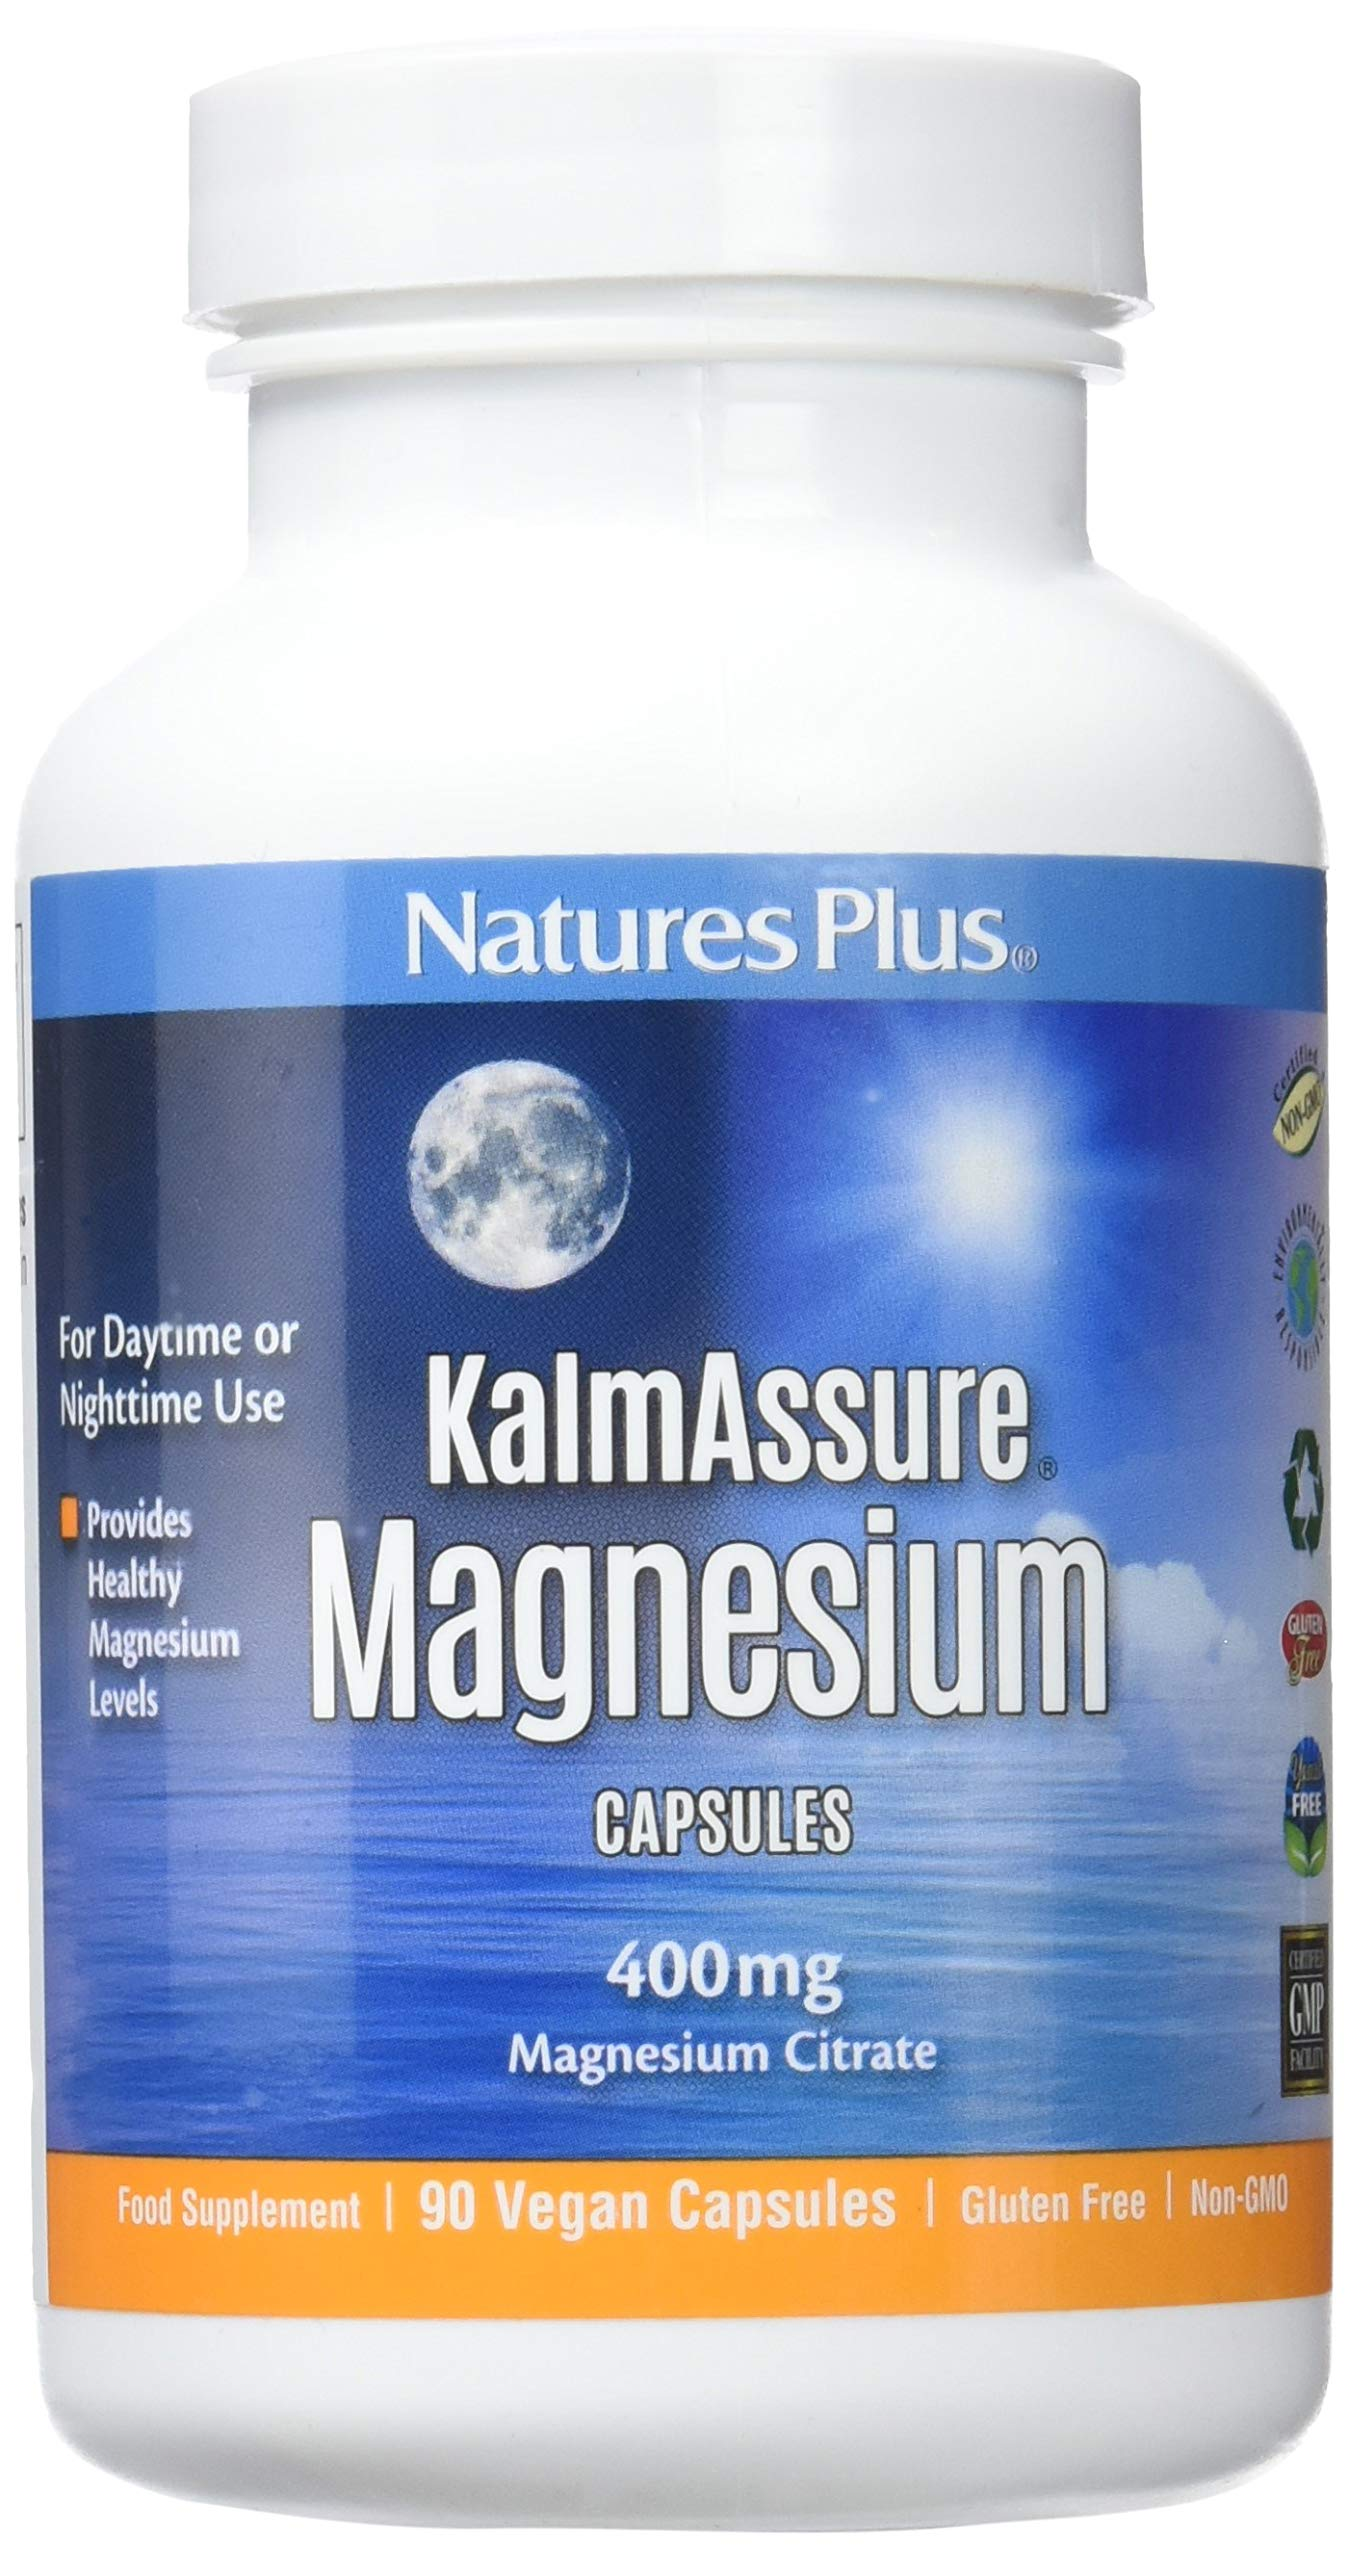 Natures Plus Kalmassure - 400 mg Magnesium, 90 Vegan Capsules - High Quality Natural Stress